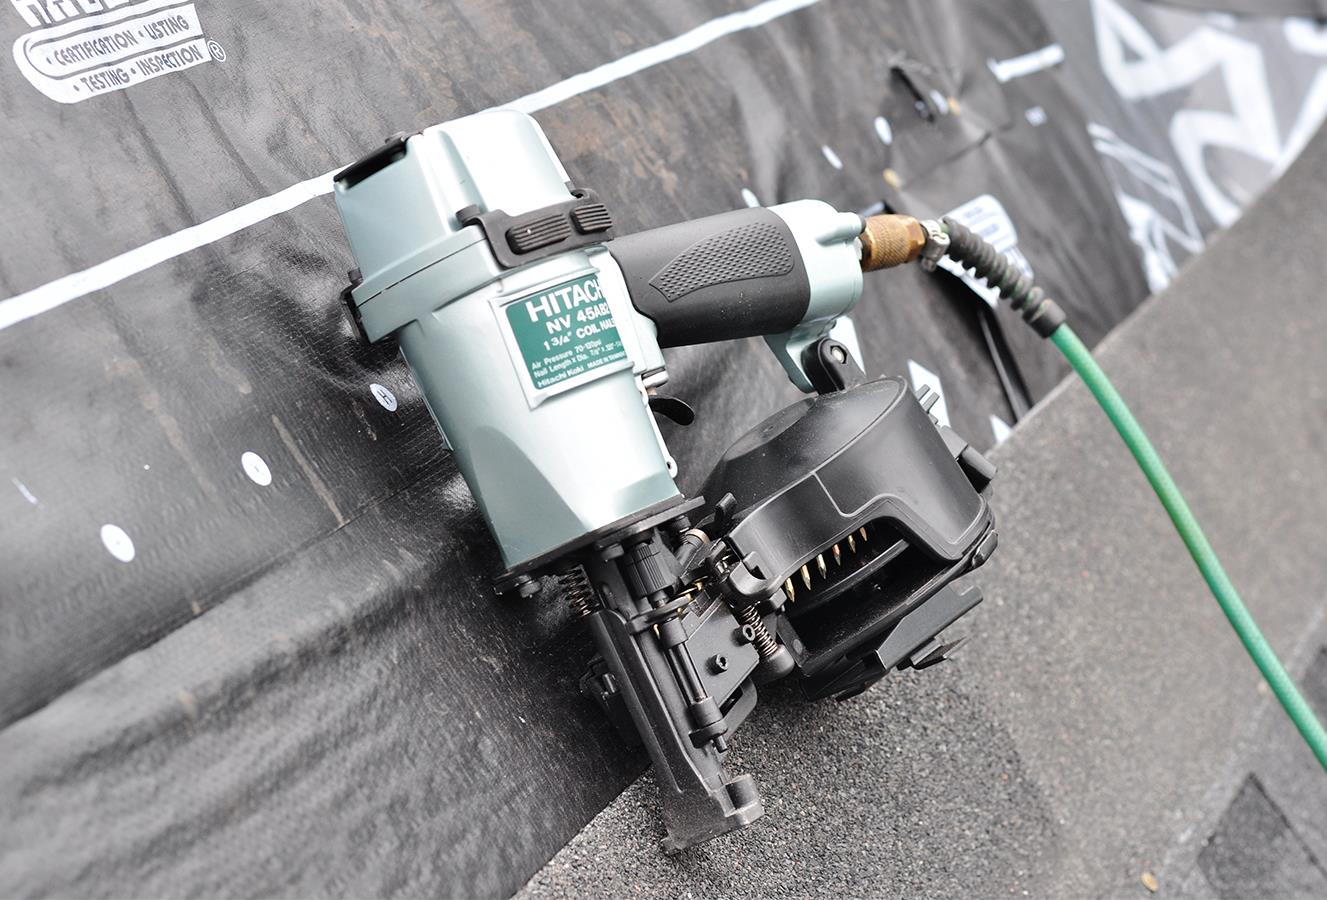 Hitachi NV45AB2 Coil Roofing Nailer